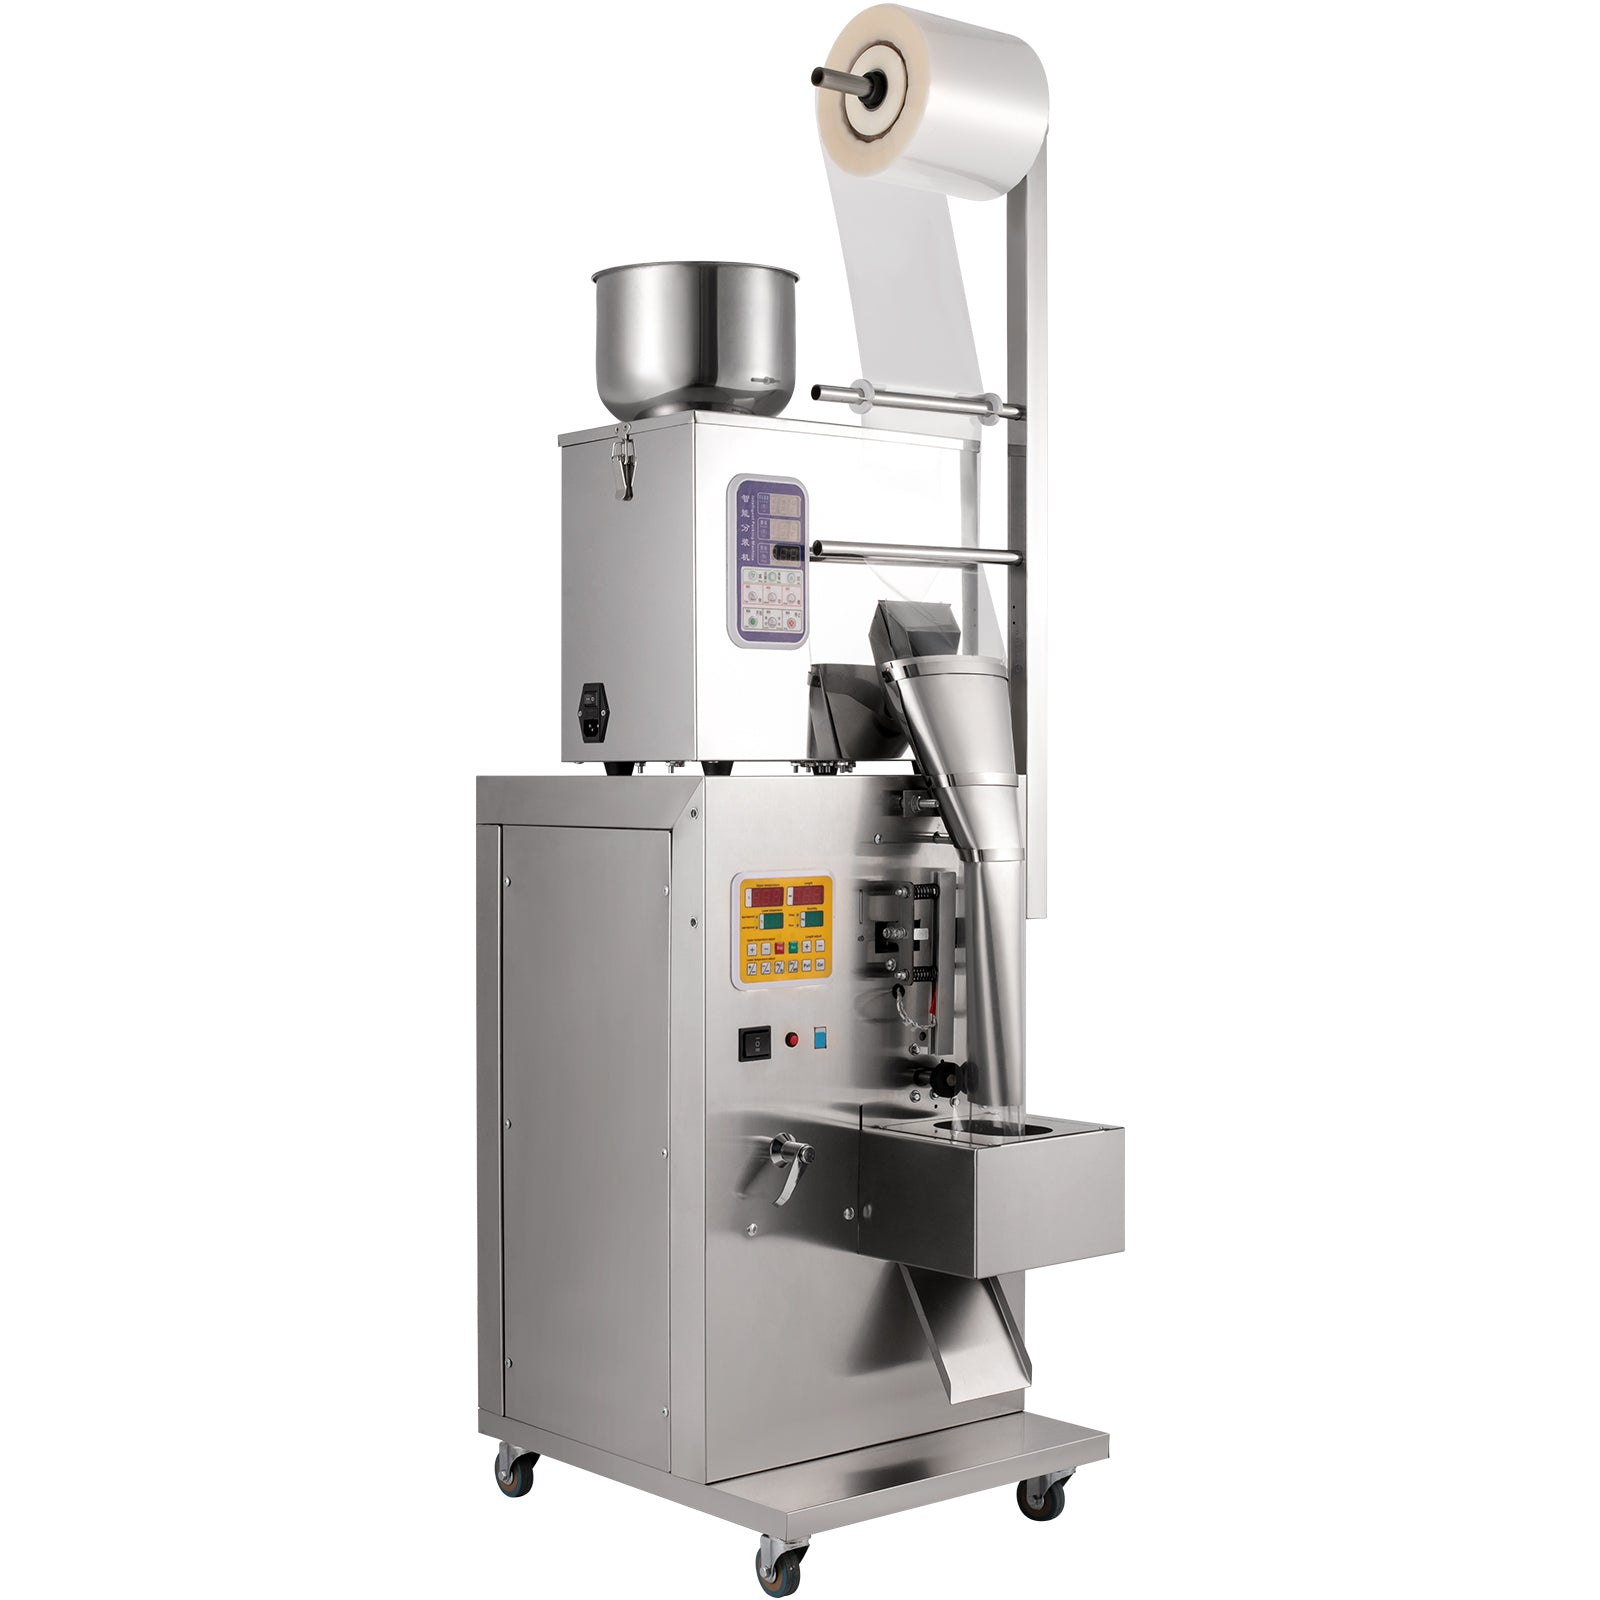 Pulver Abfüllmaschine Pulverfüllmaschine 1-100g 60w Powder Filling Machine